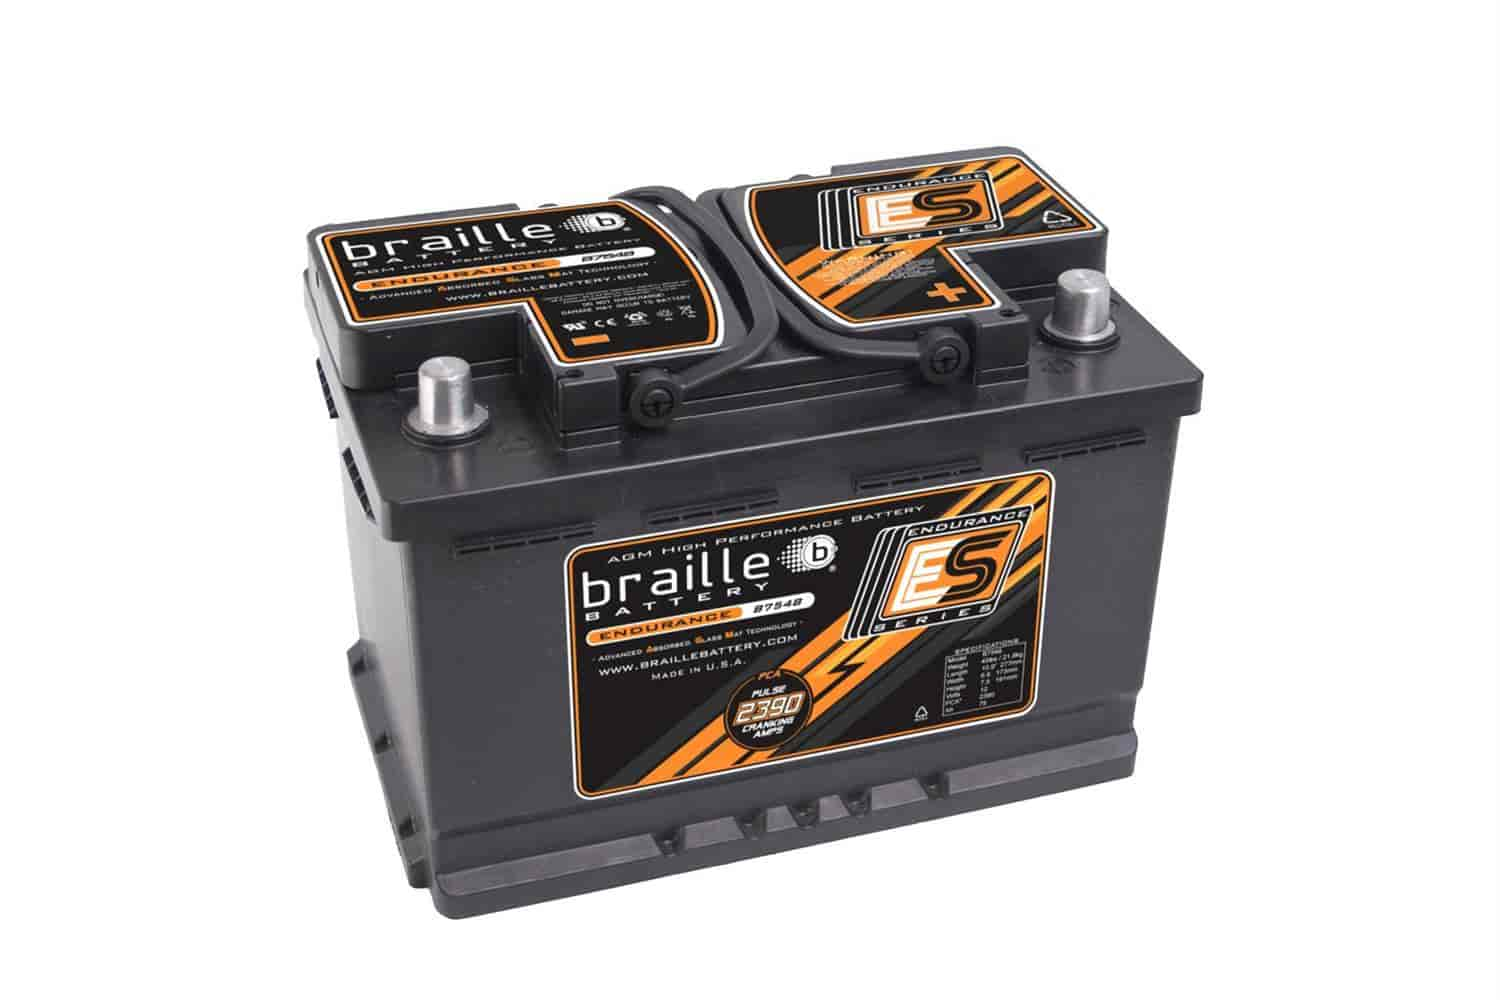 Braille Battery B7548